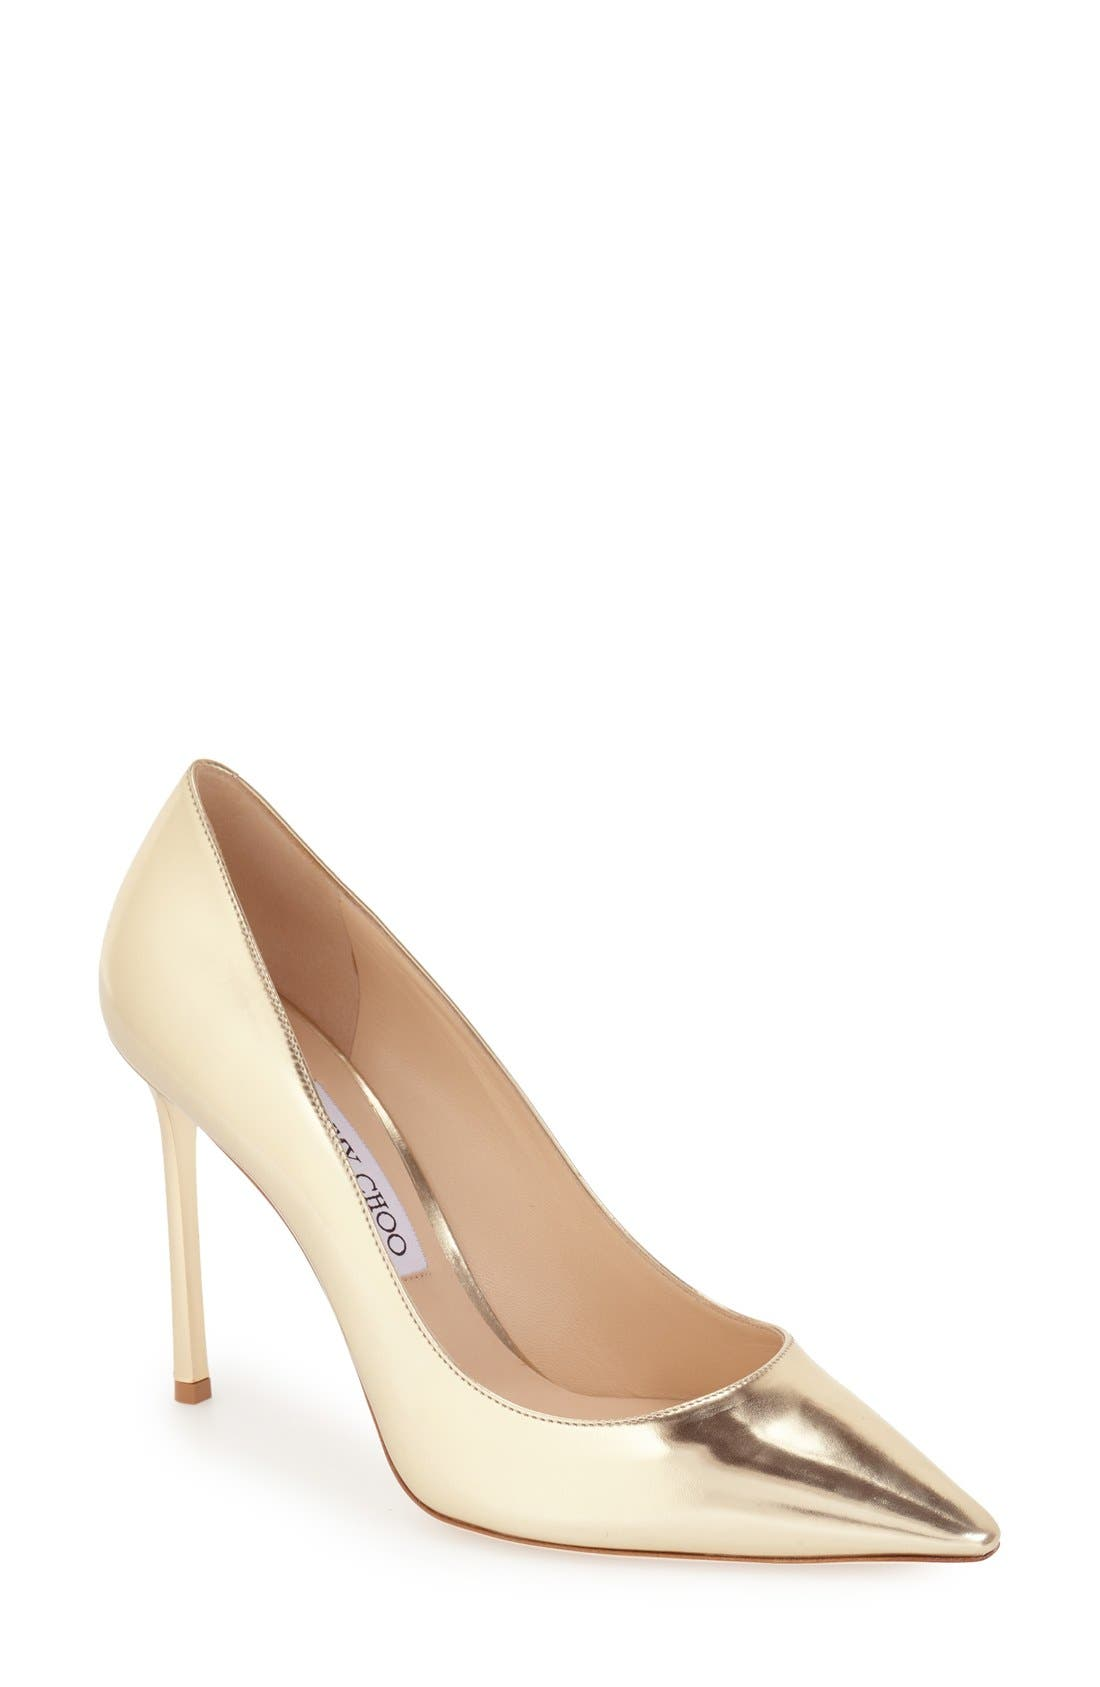 Main Image - Jimmy Choo 'Romy' Pointy Toe Pump (Women)